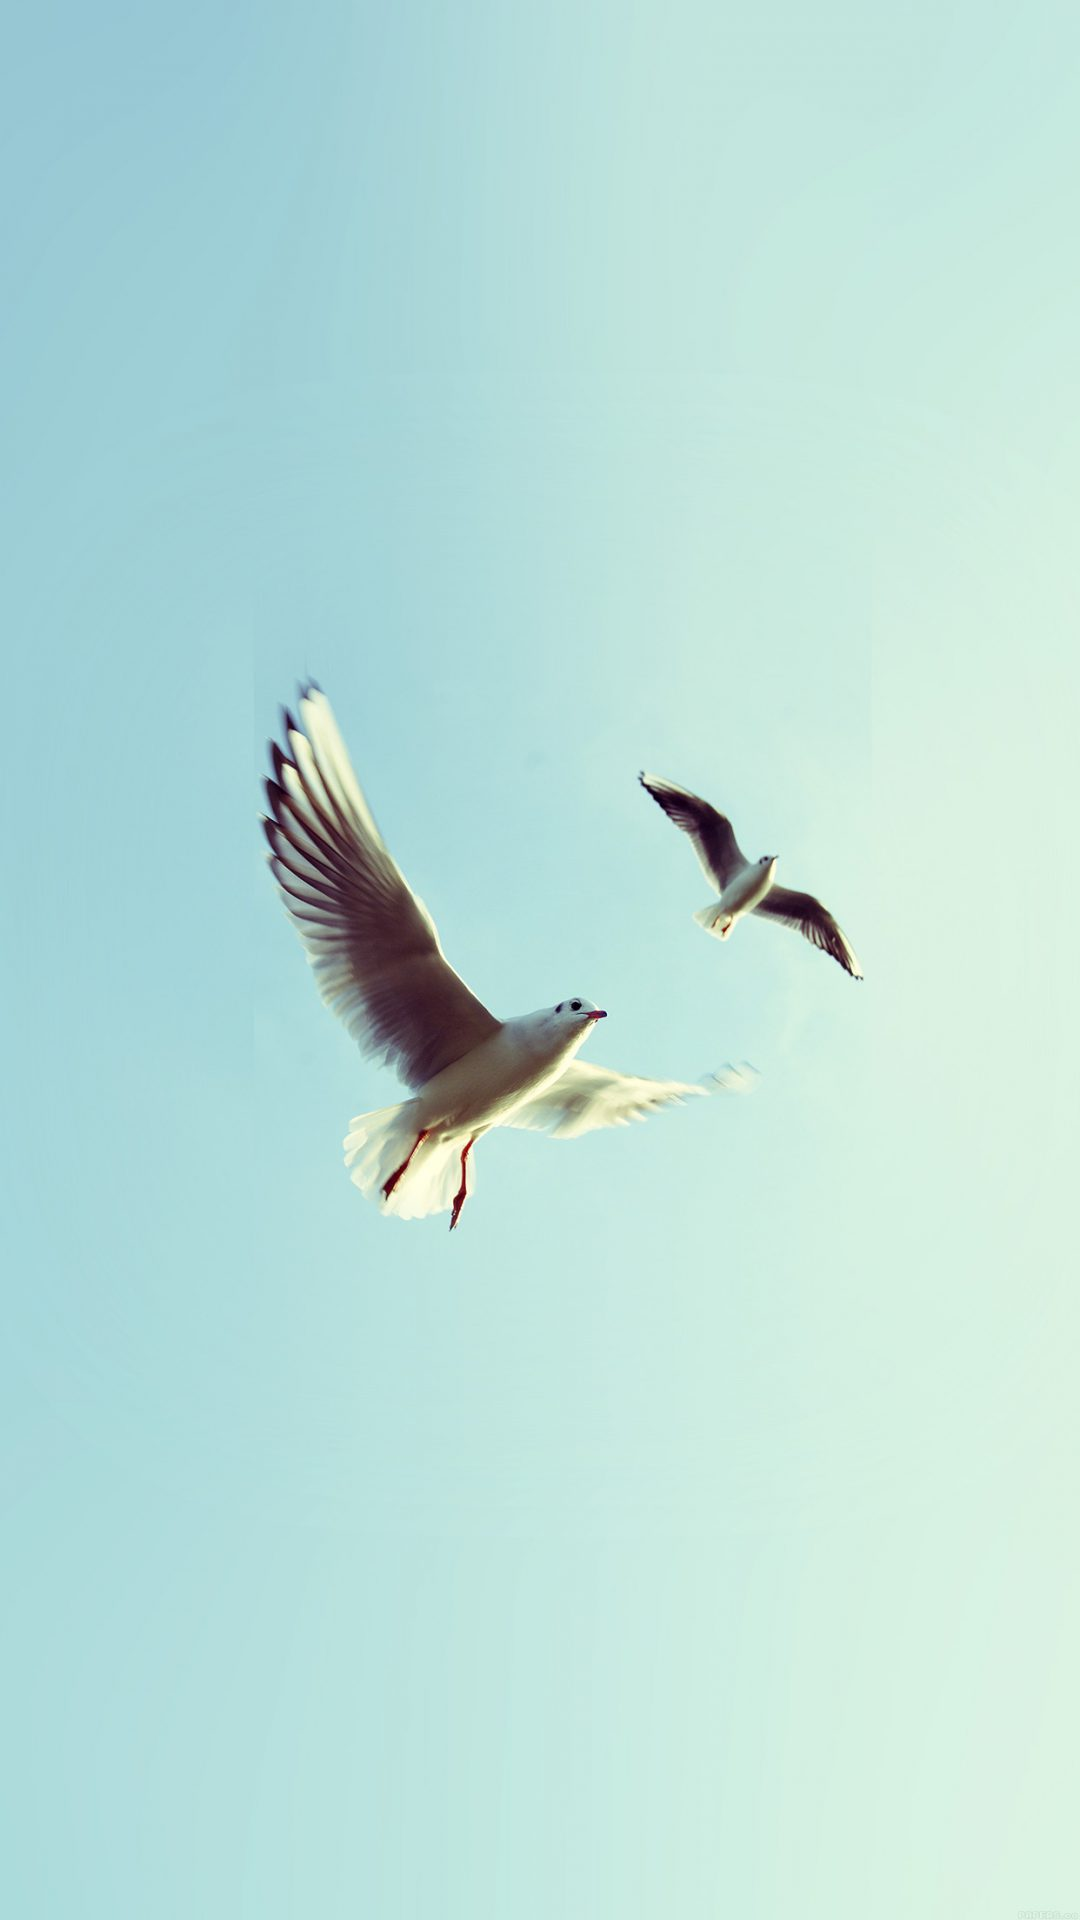 Pigeons Bird Fly Sky Animal Nature Minimal